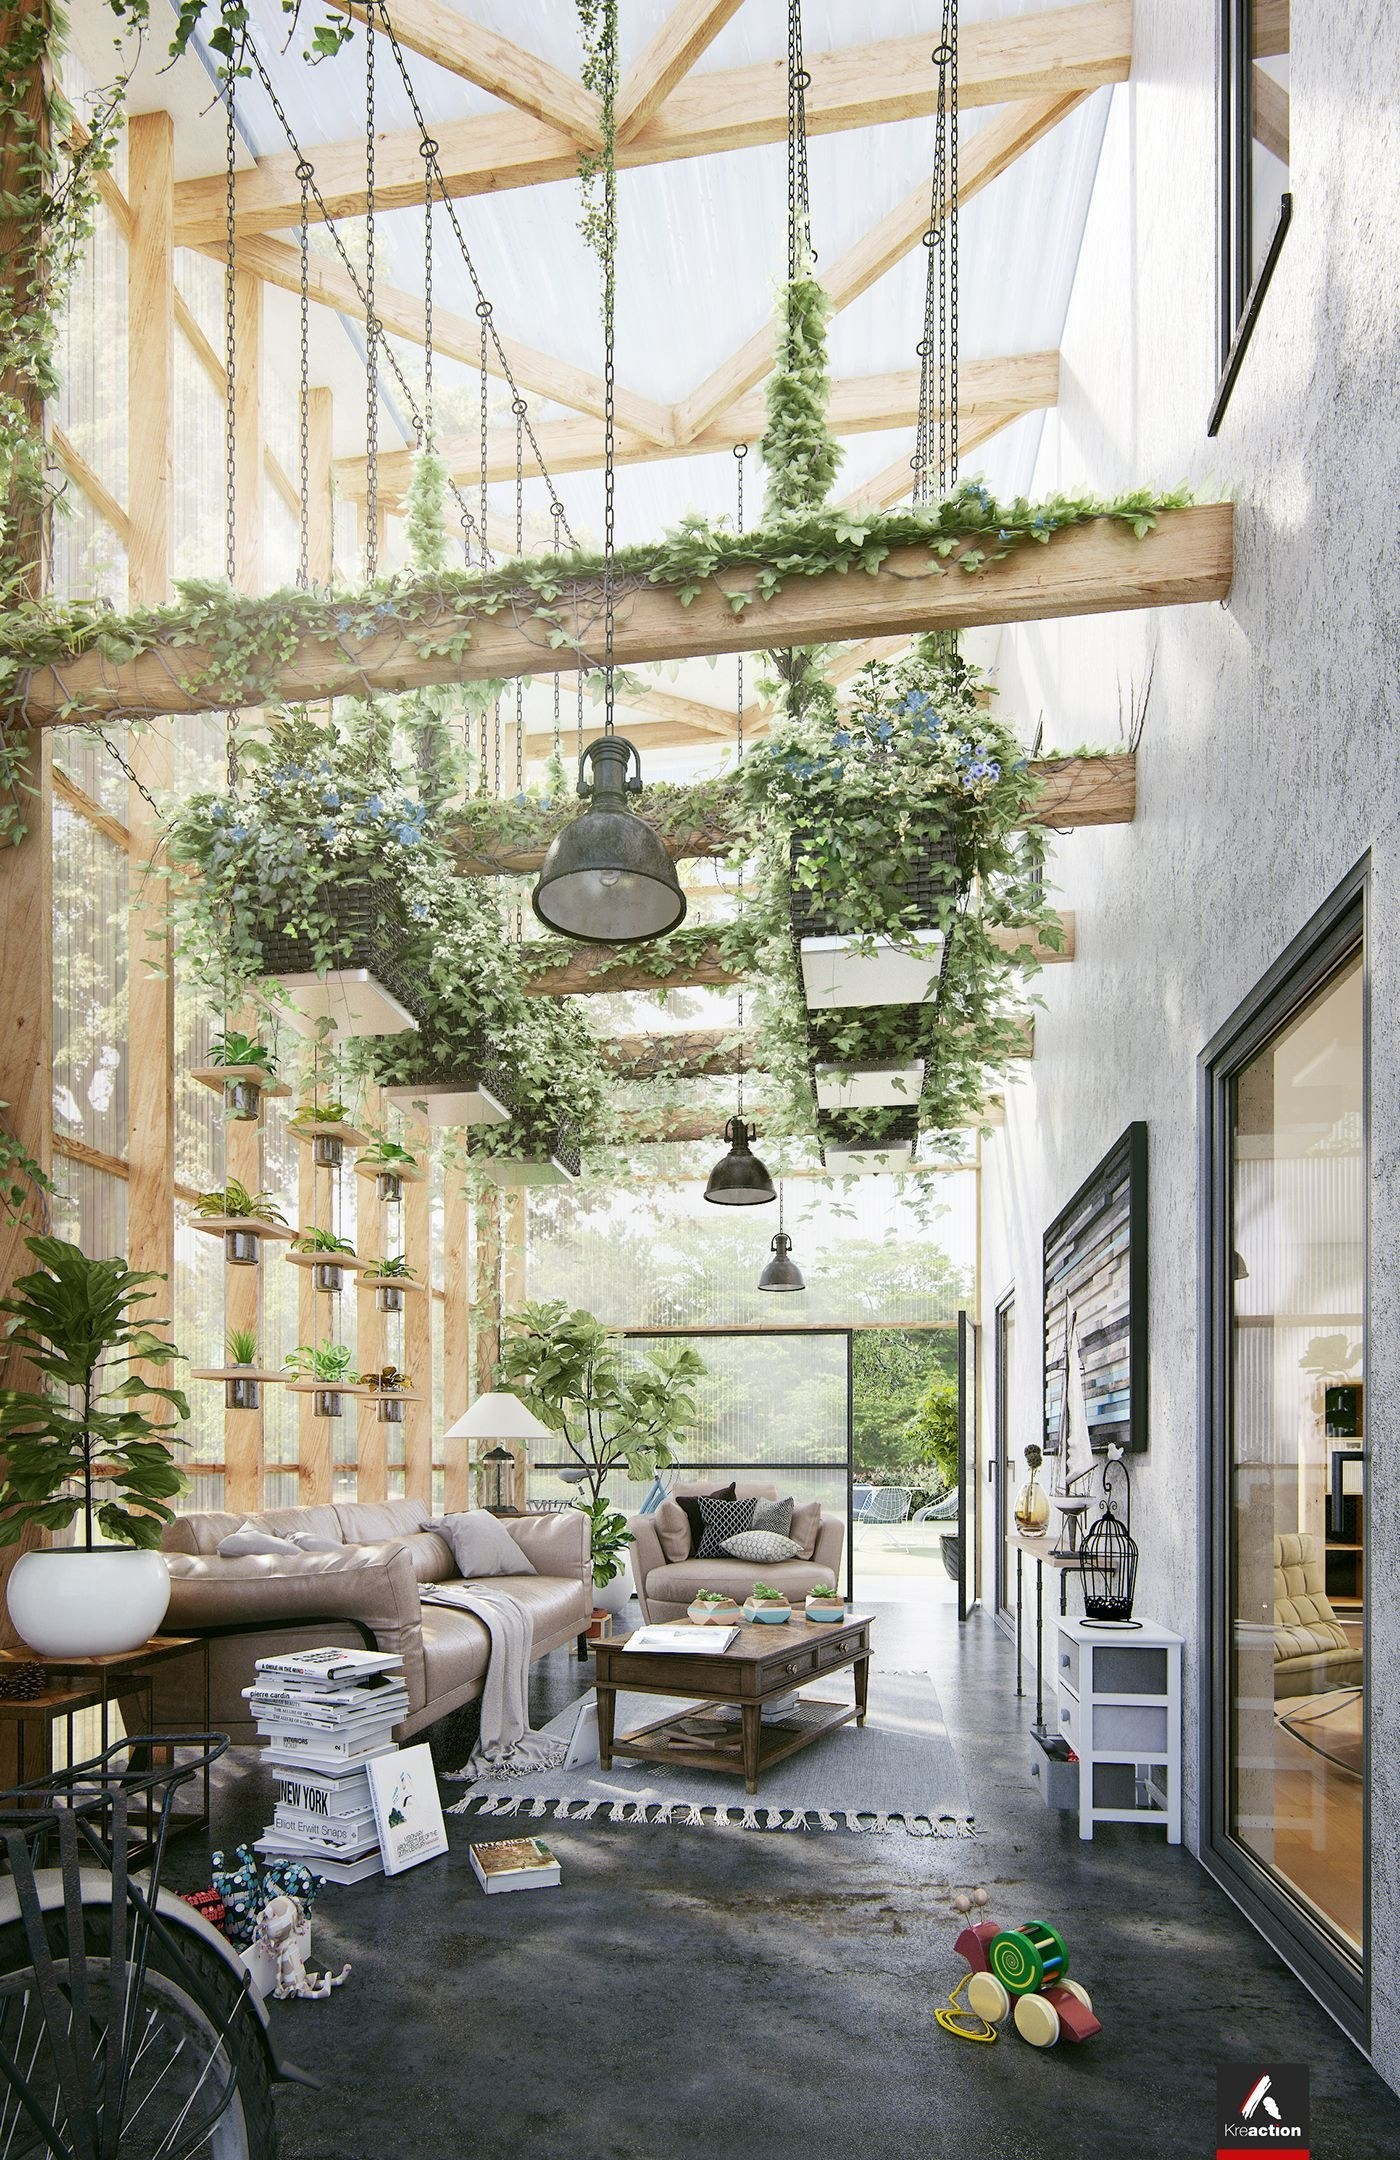 44 Impressive Glass Ceiling Indoor Design Inspiration Ideas - About-Ruth